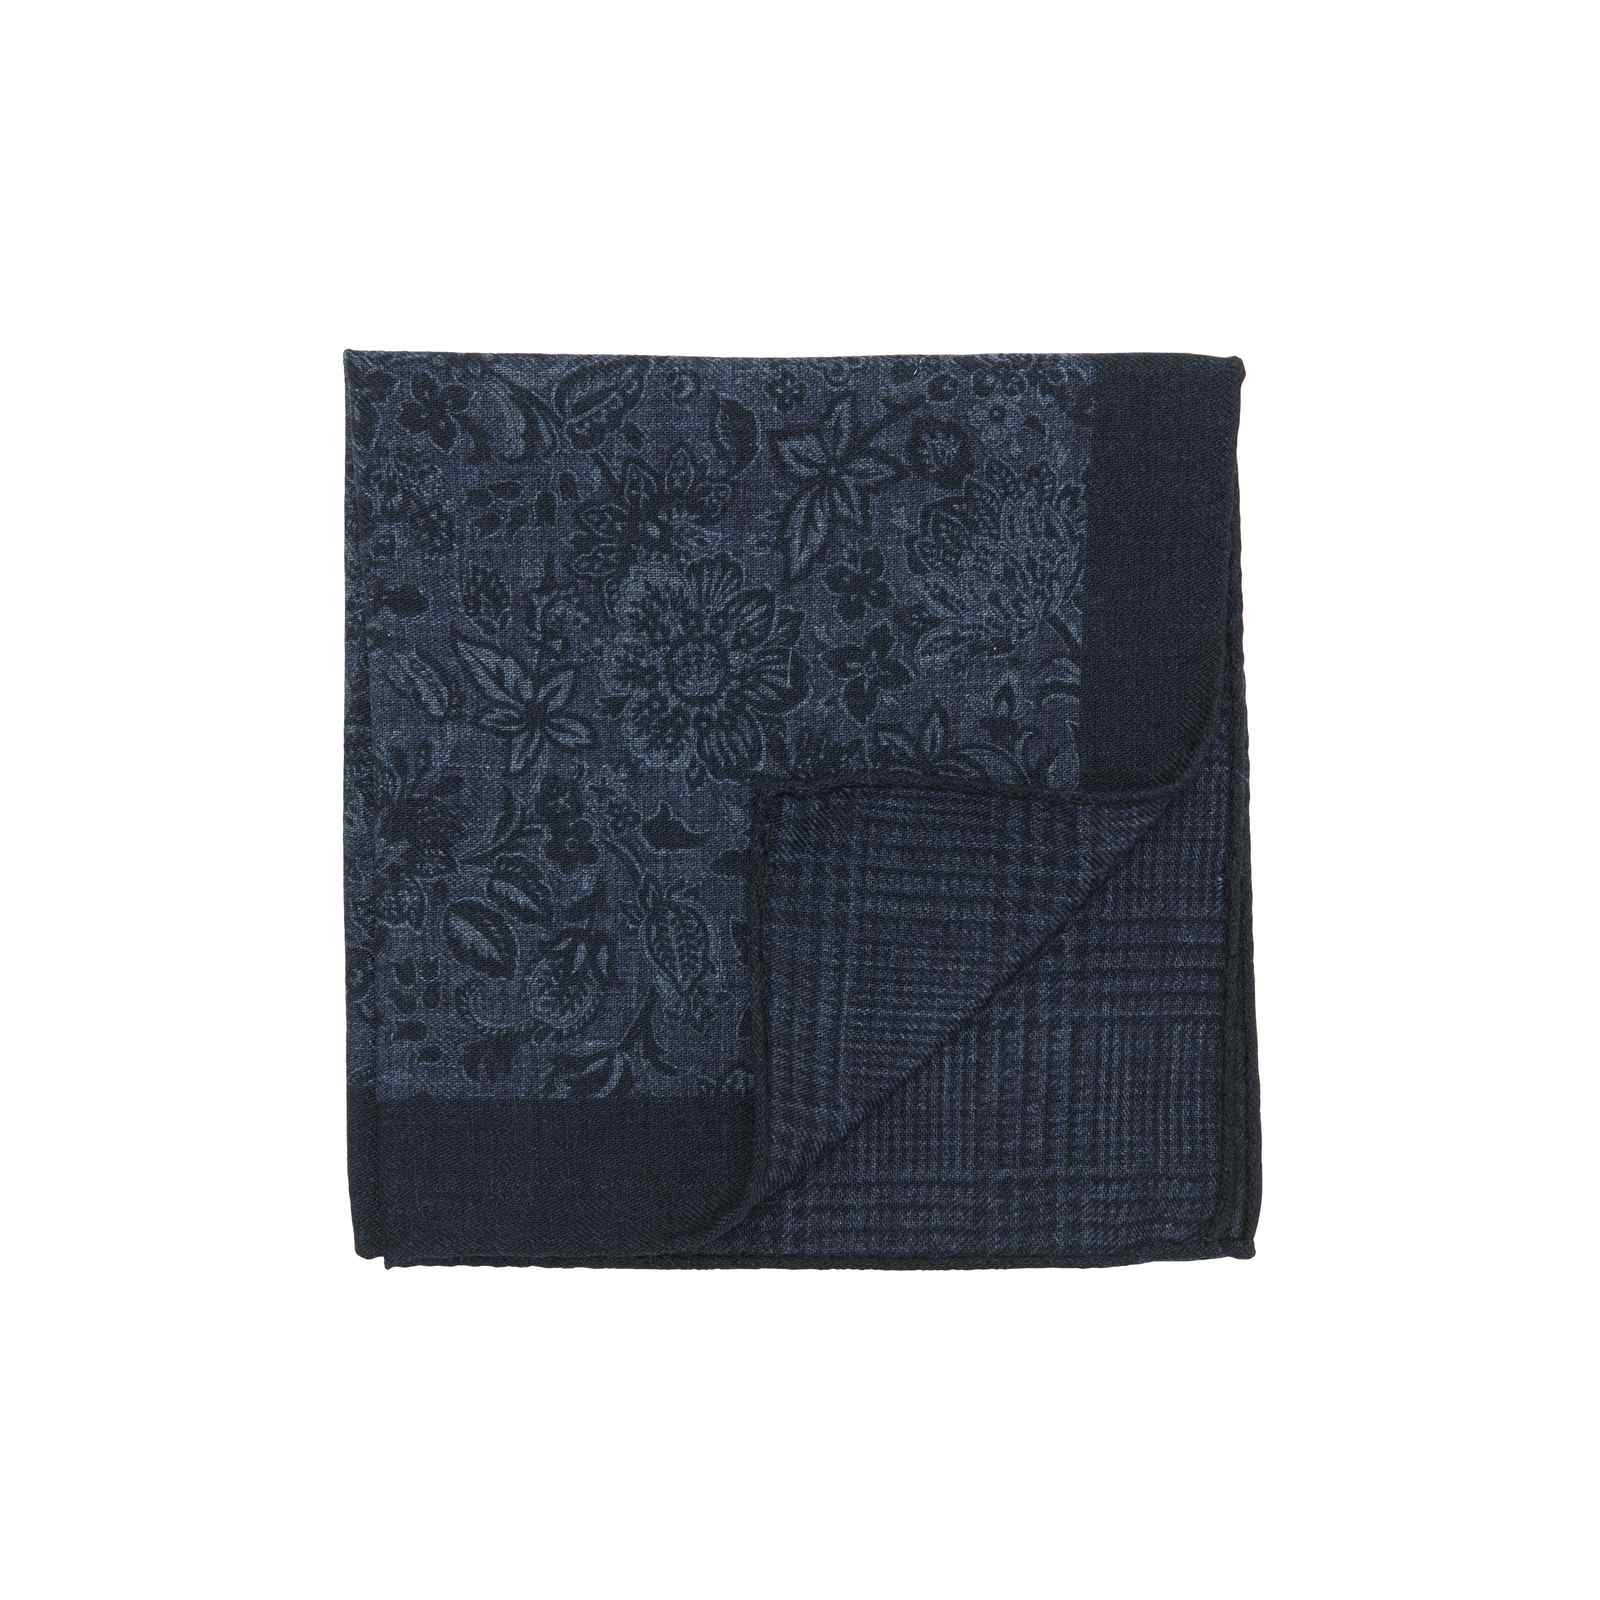 Navy and Classic Blue Double Sided Floral and Glencheck Pocket Square